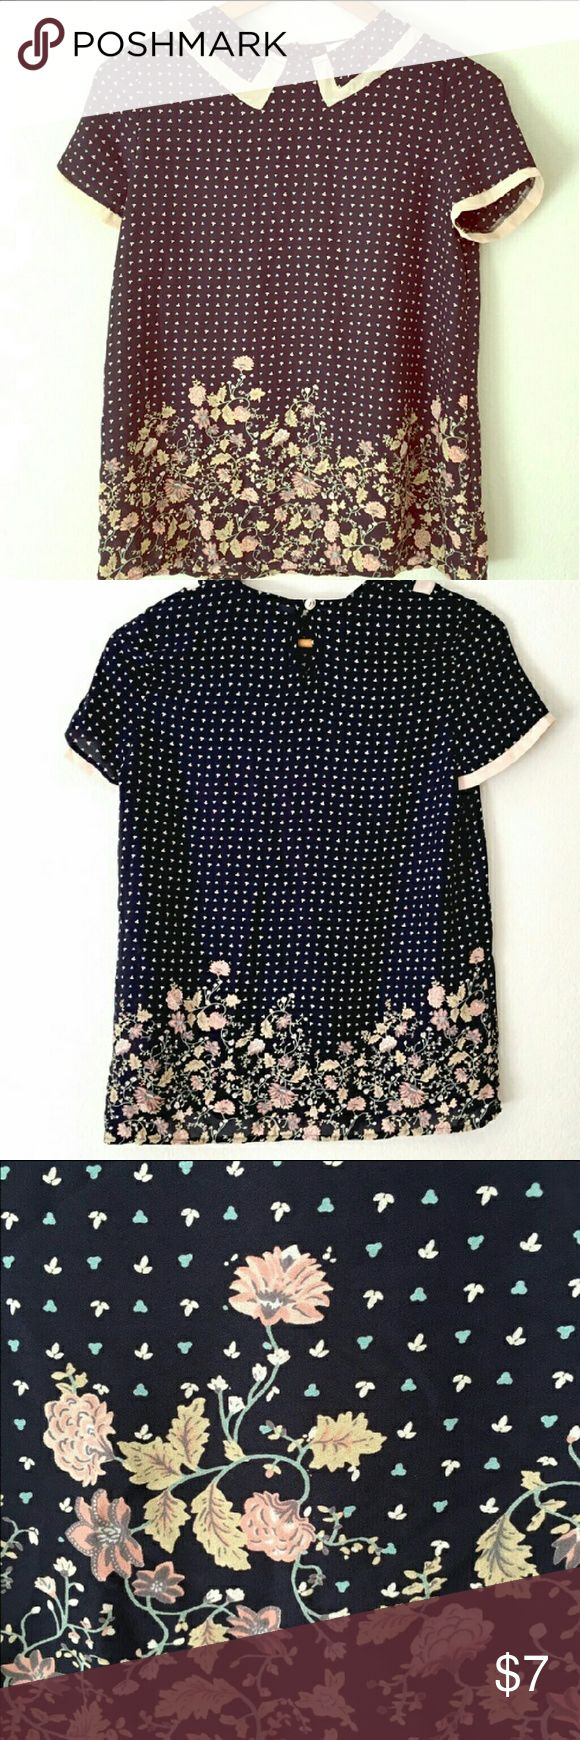 """Adorable flower blouse with a cute collar Dark blue base peach and pink print. 25"""" long, no stretch, adorable peach flower pattern and illusion collar. Tops Blouses"""